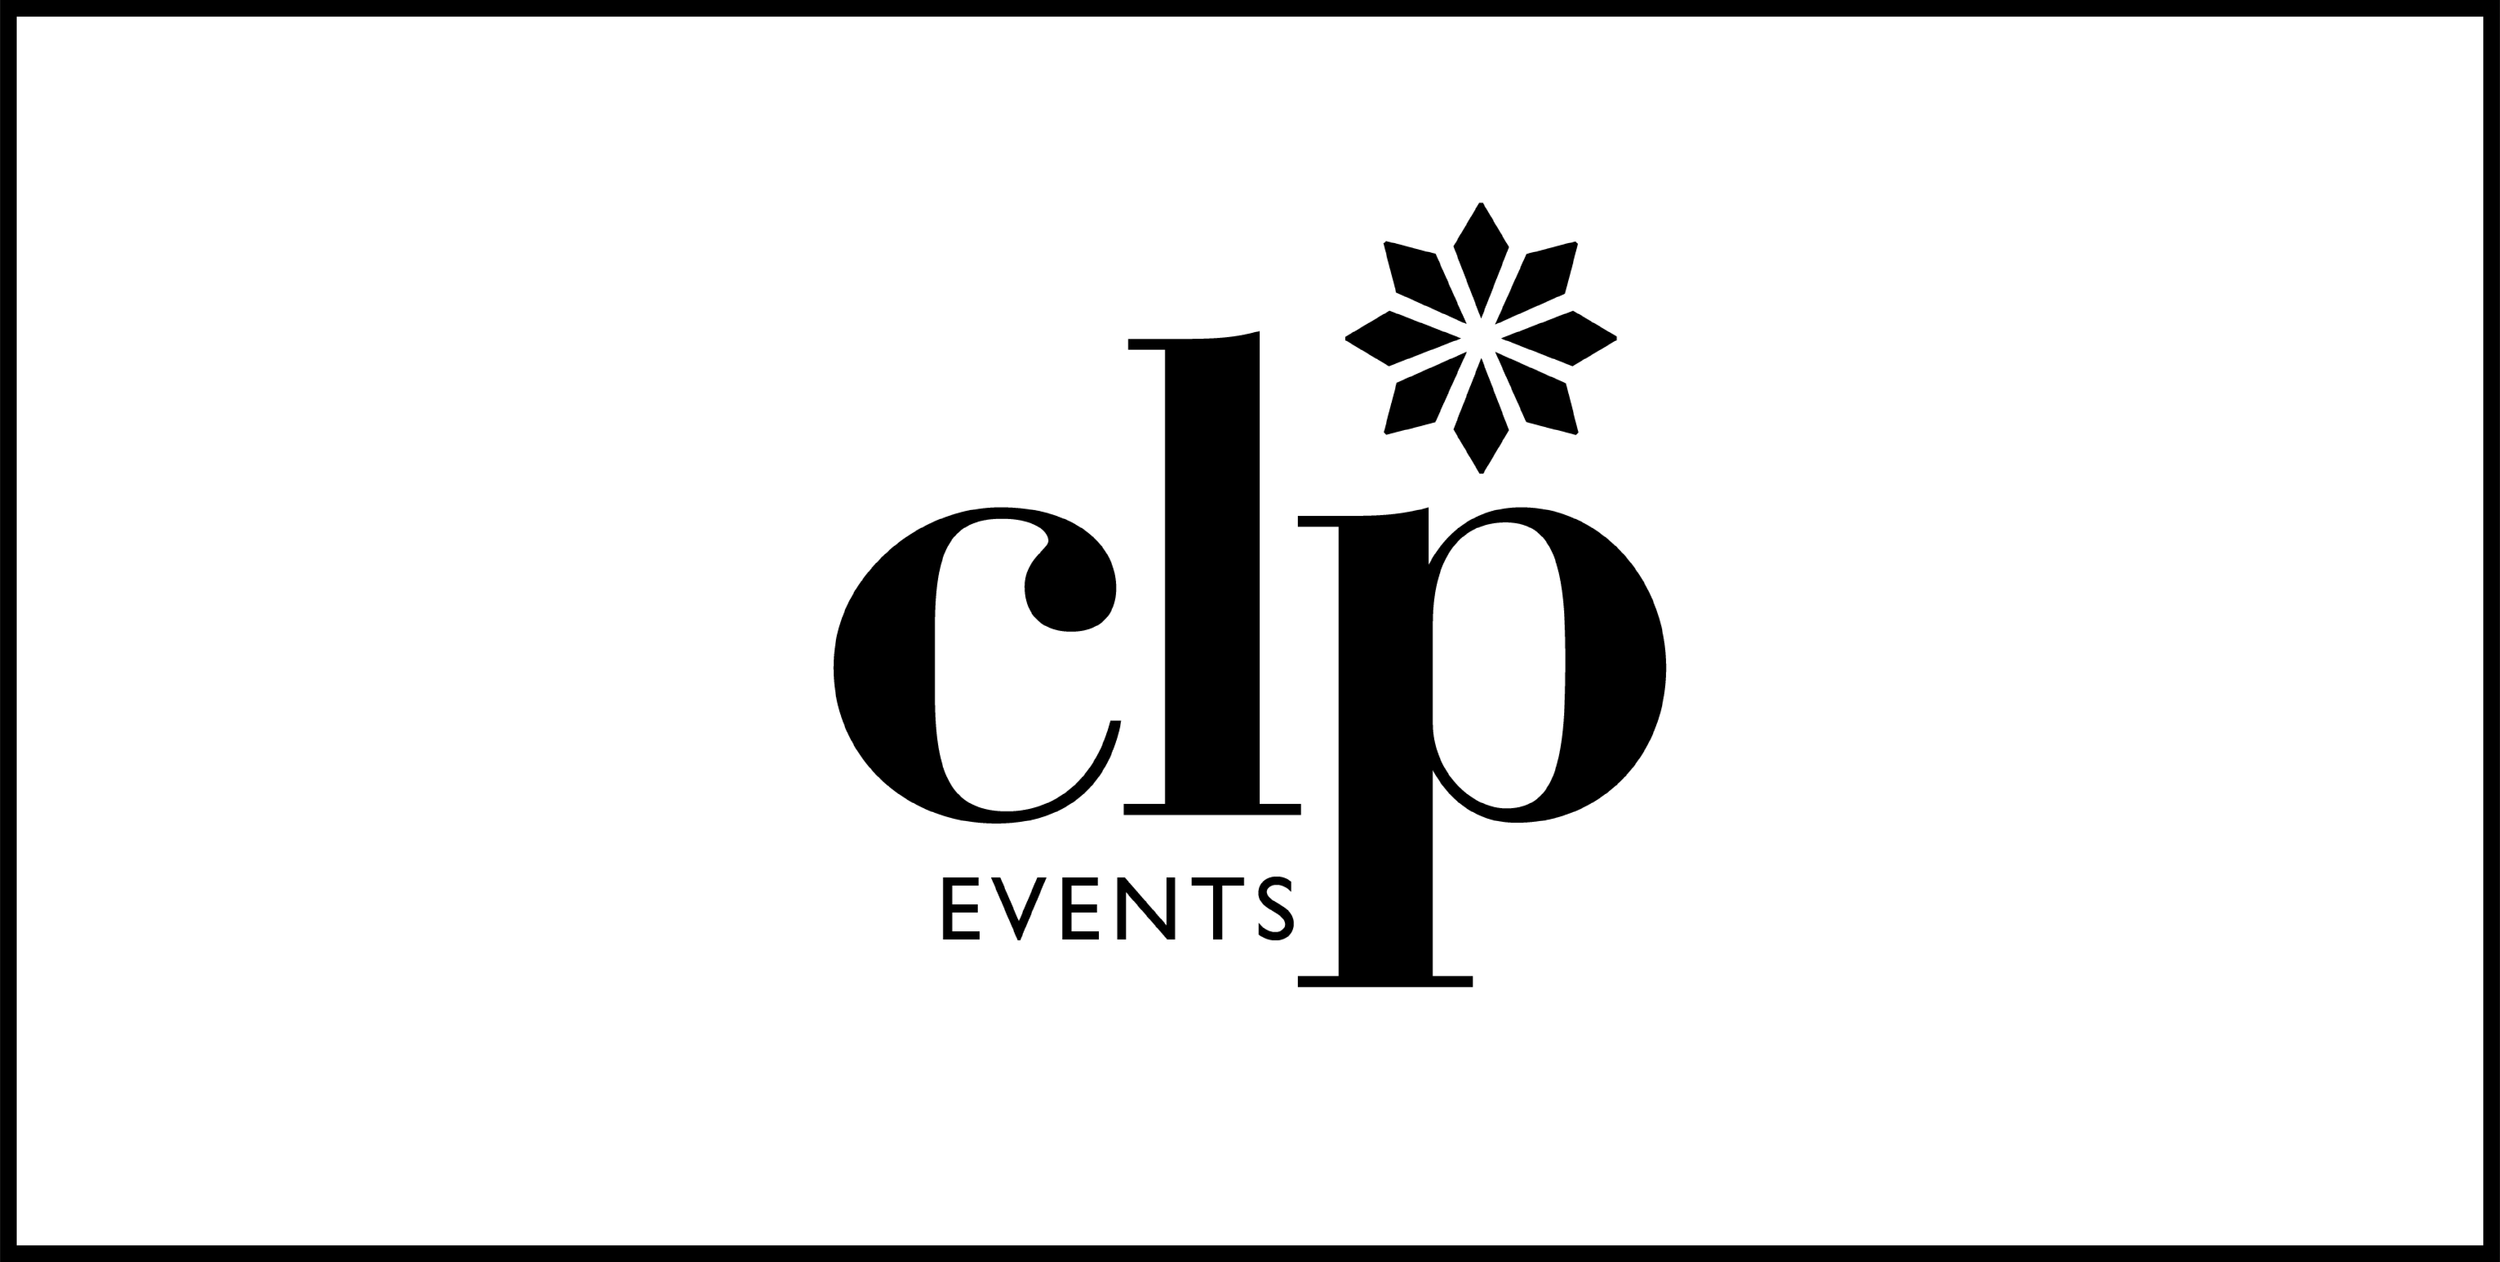 CLP DESIGNS CLIENT BUTTONS STYLE EVENT AND CLP EVENTS-02.png